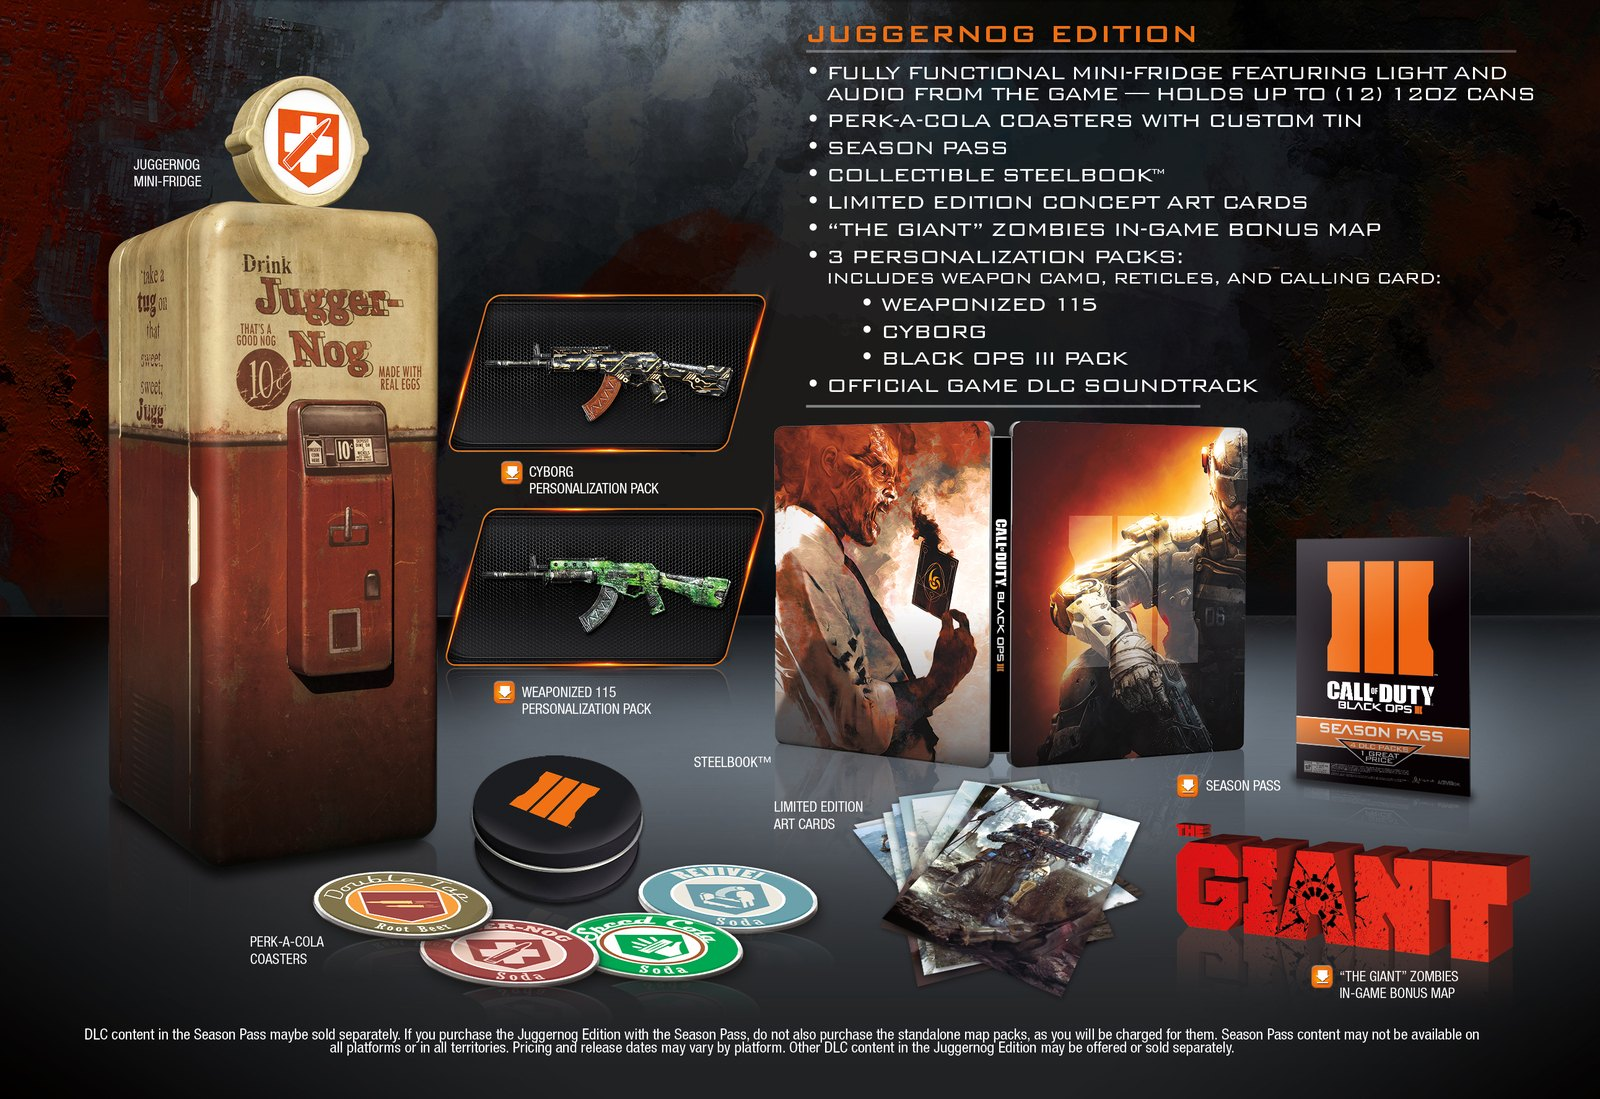 Call of Duty: Black Ops 3 Zombies Details, Juggernog Edition